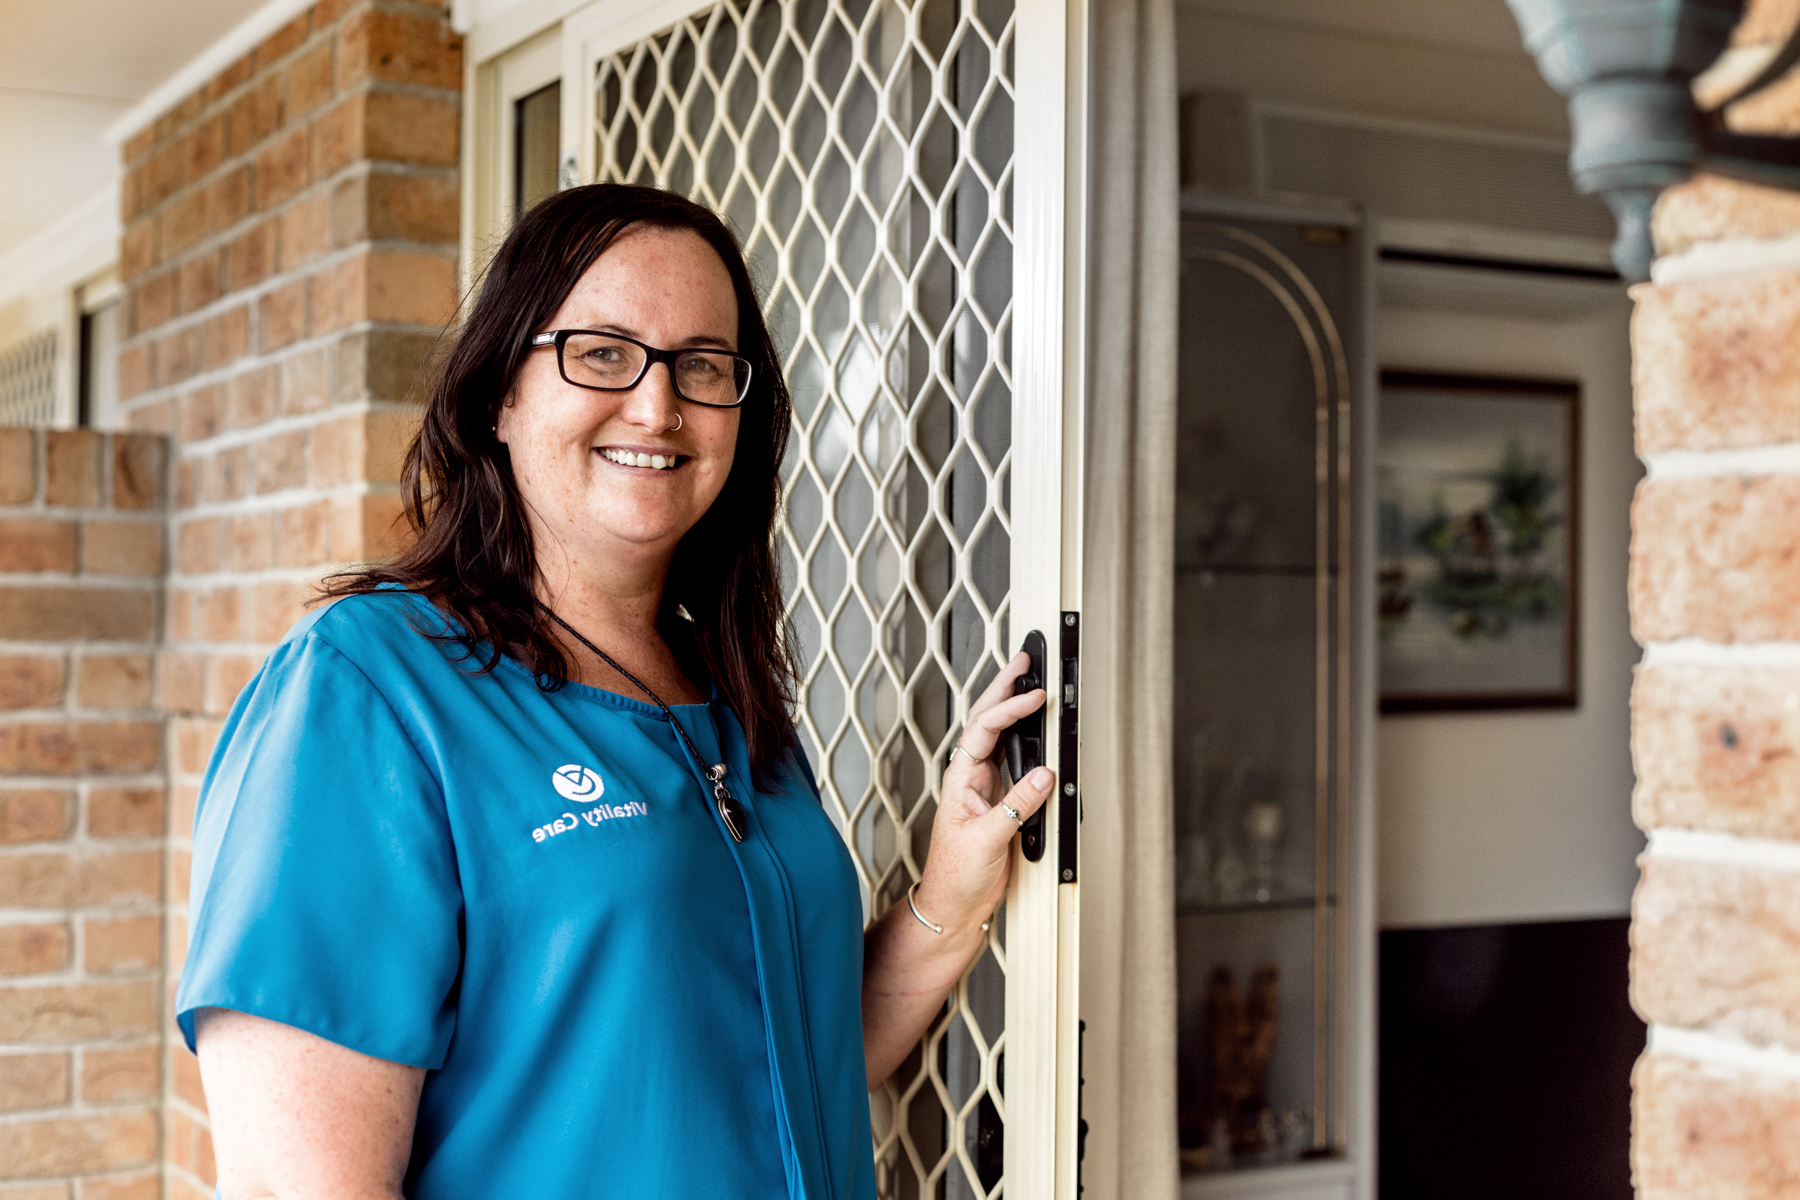 Our team is passionate and experienced - We handpick the best people to join our team. Our friendly team of aged care professionals is passionate about helping you.